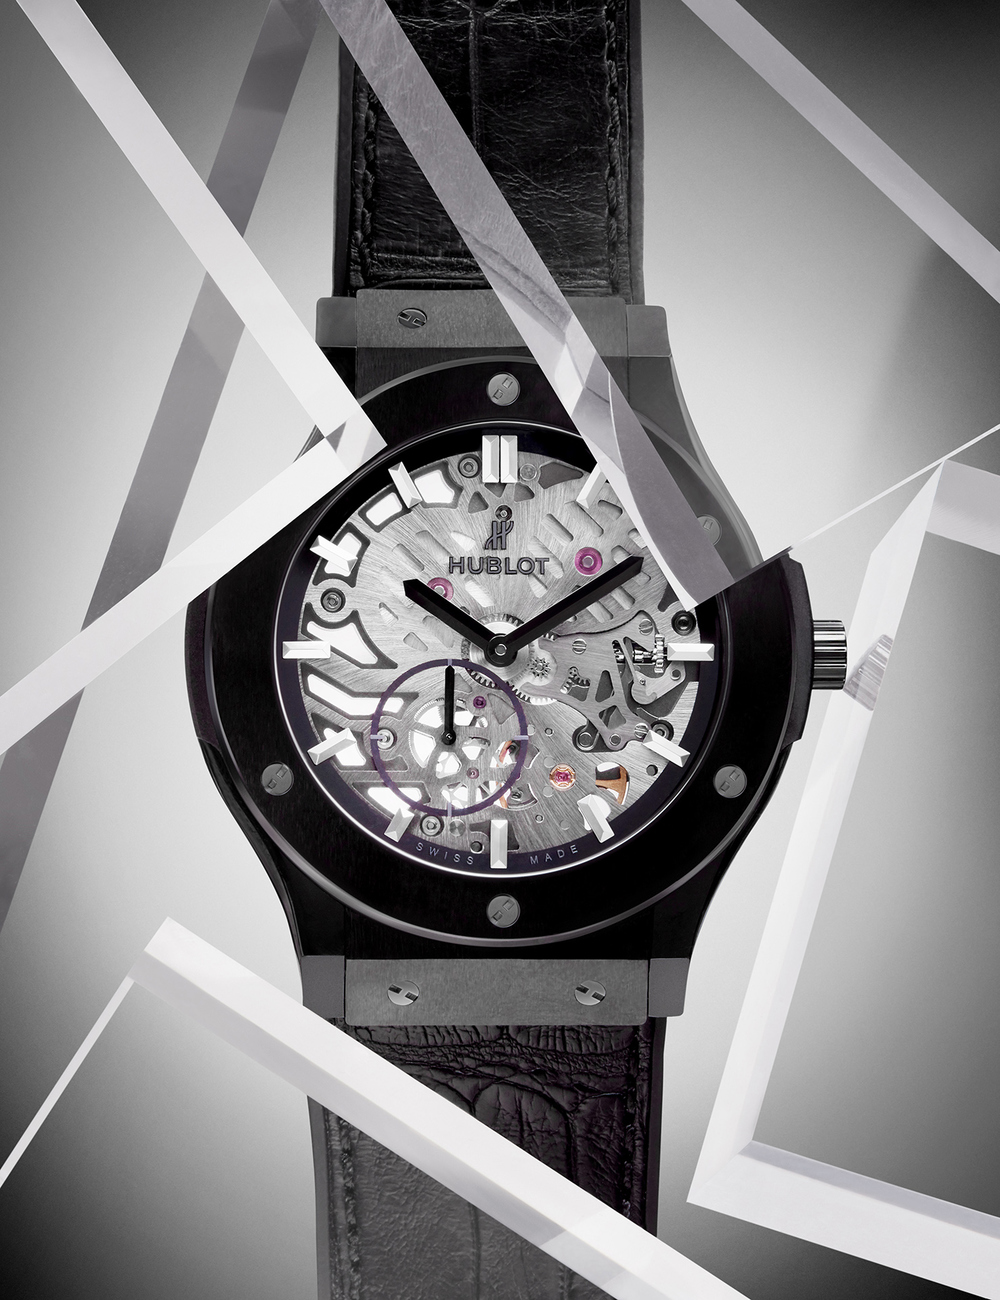 watch-photography-london-watch-photographer-josh-caudwell-5-hublot.jpg